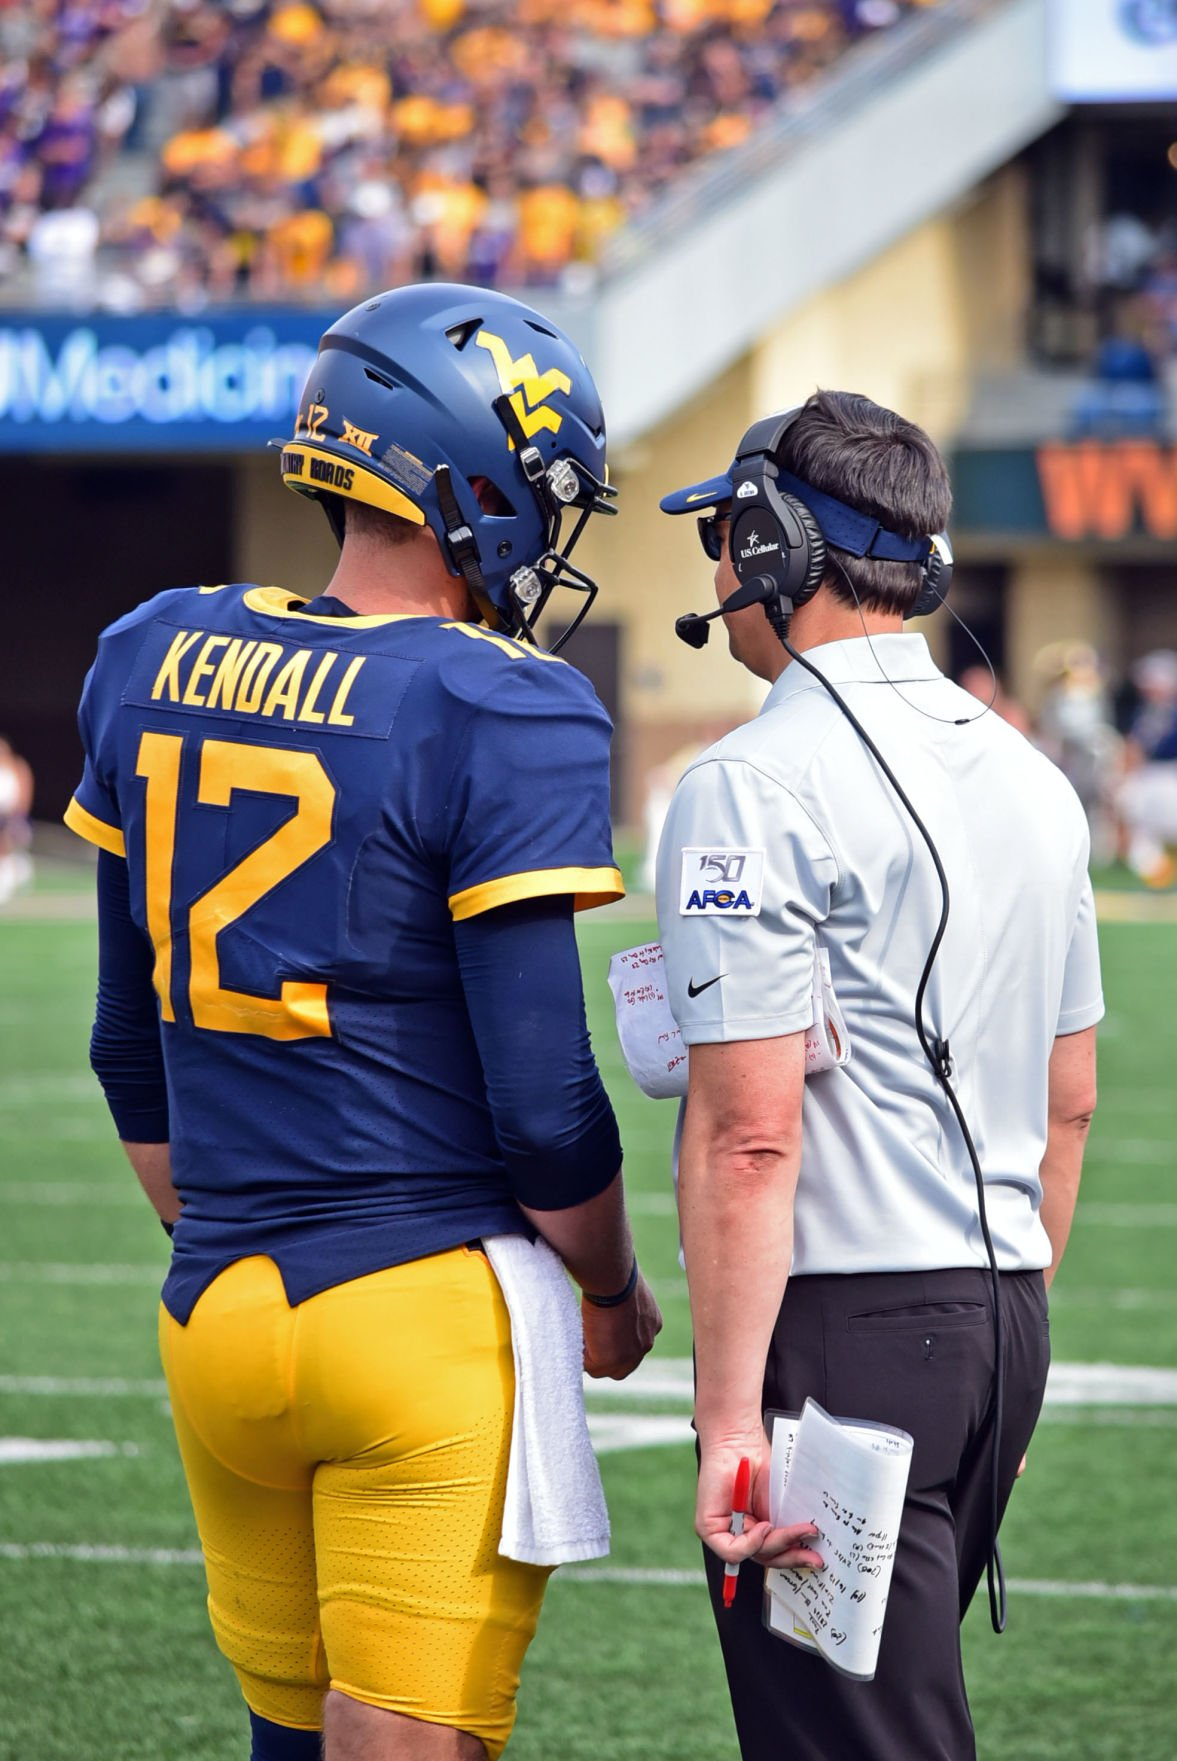 Quarterback Austin Kendall meets on the sideline with head coach Neal Brown to discuss the next play against JMU.